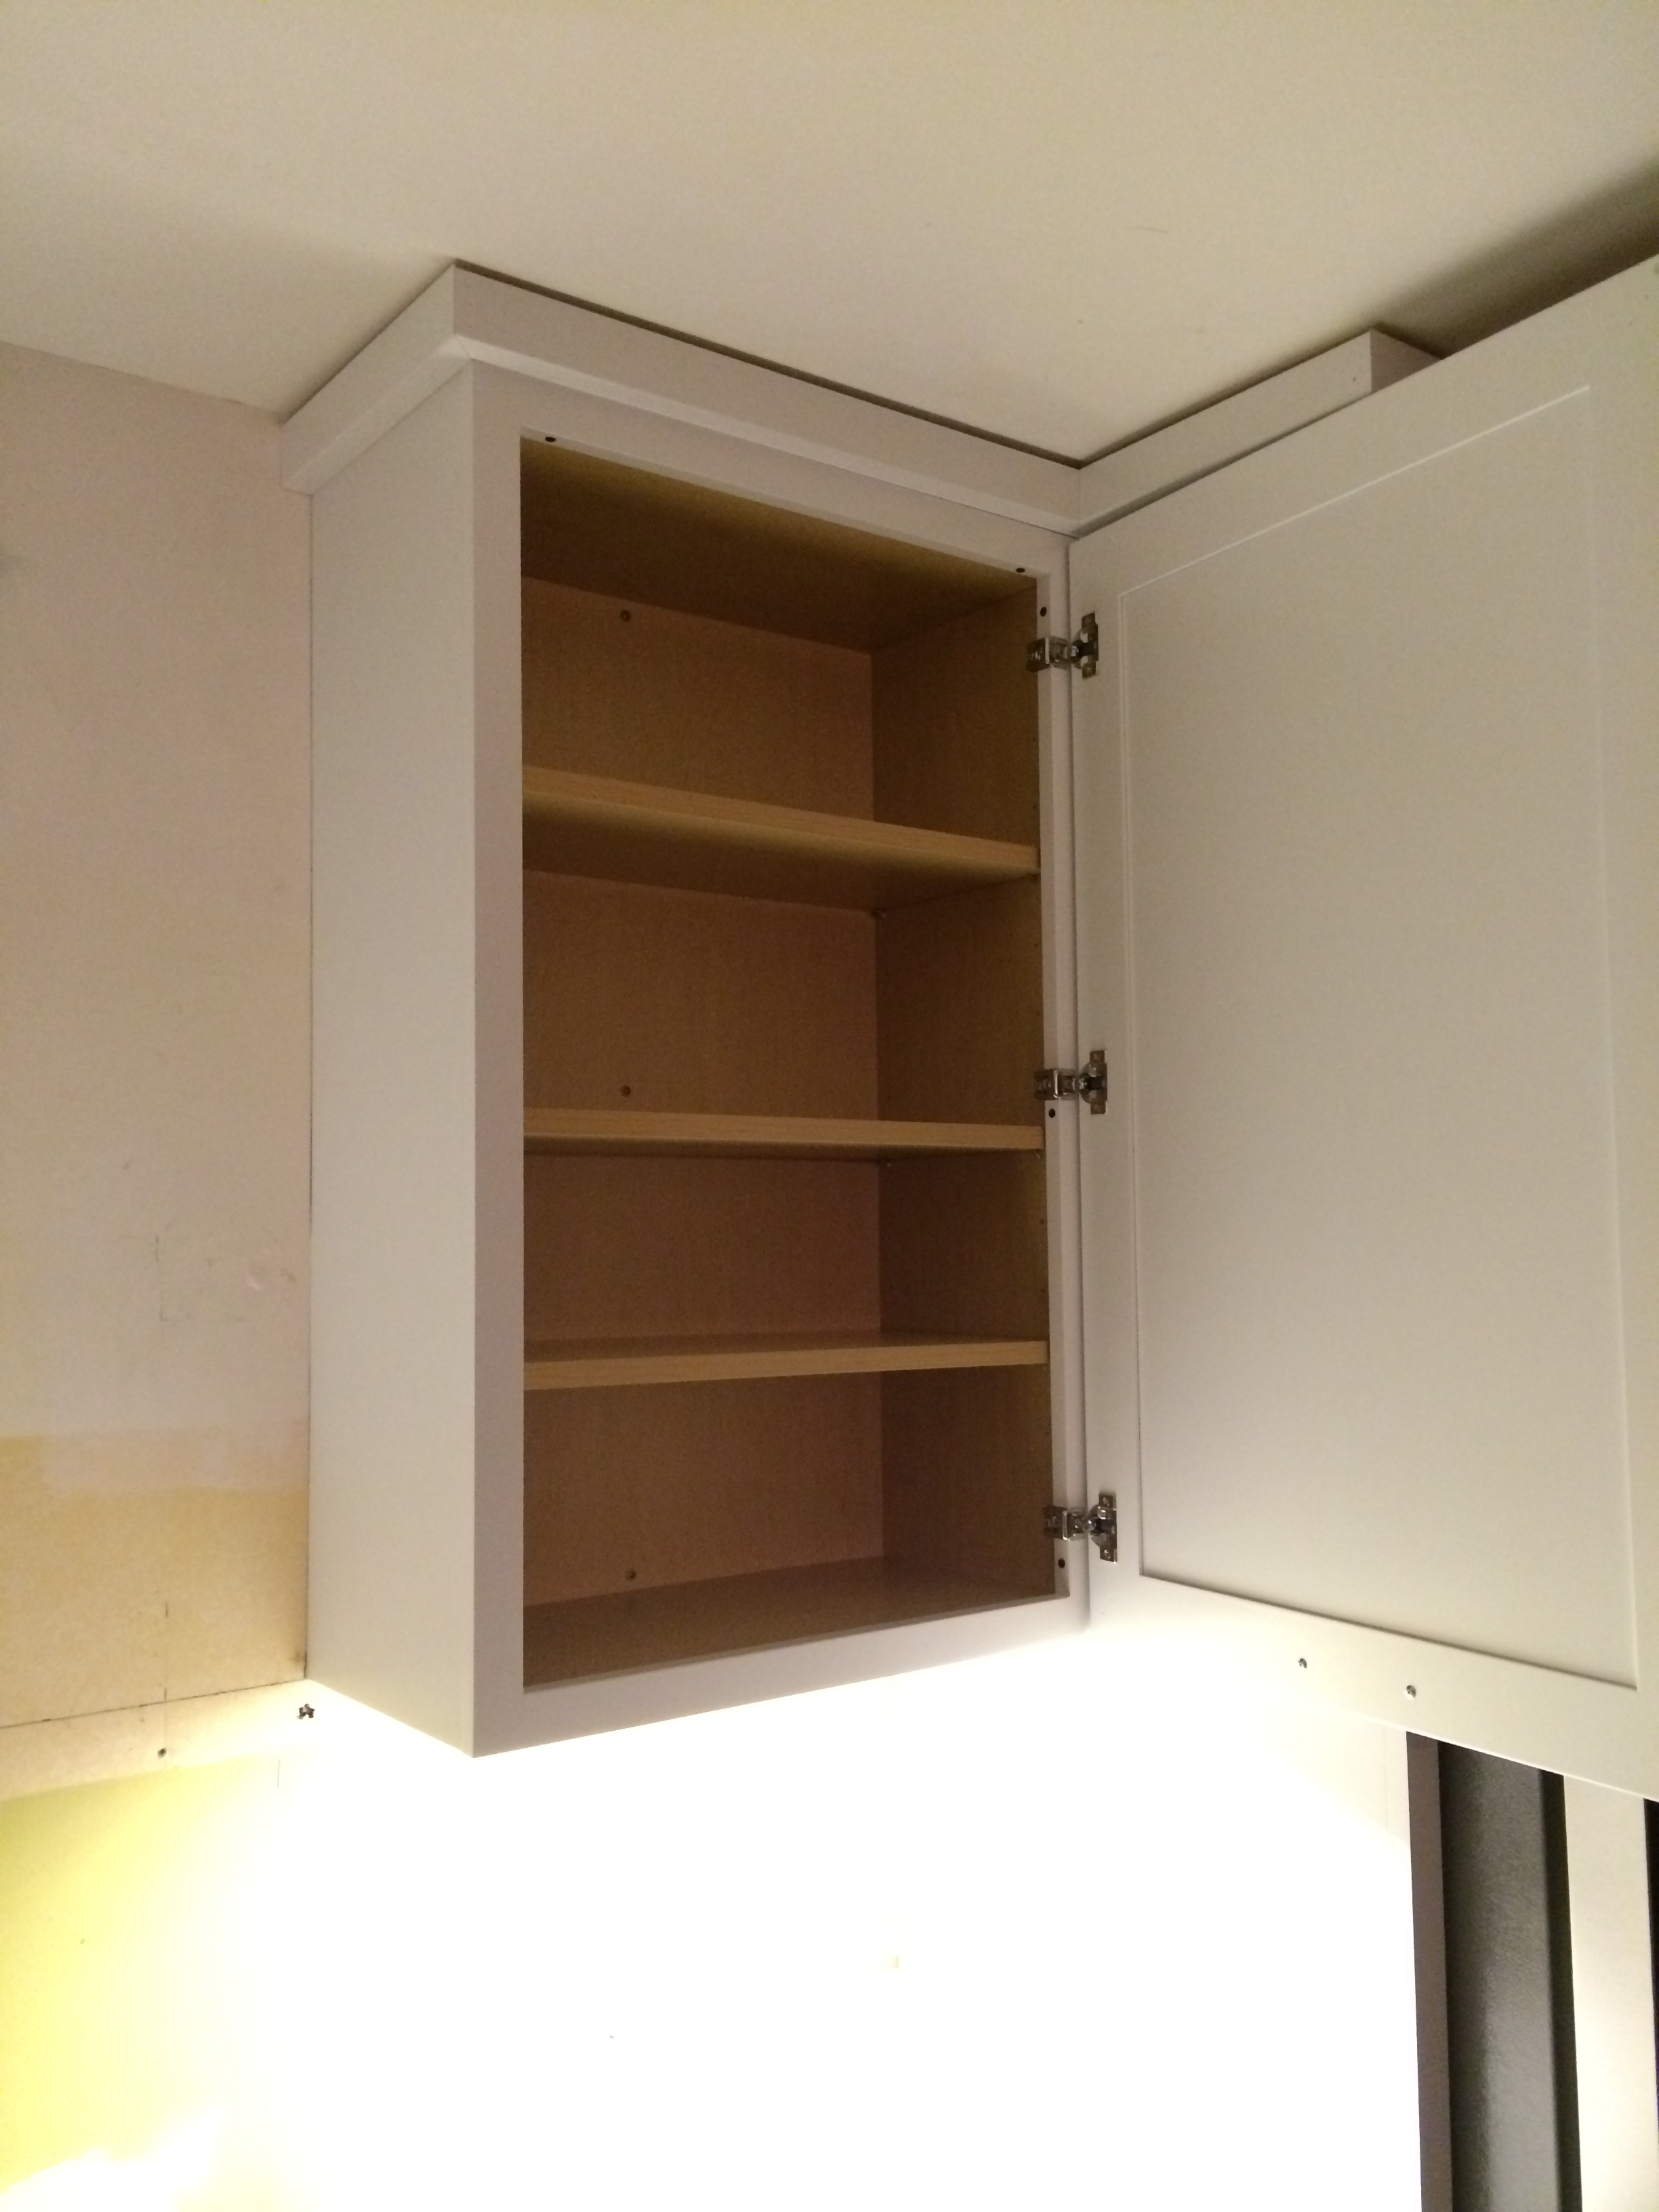 How to install kraftmaid cabinets bar cabinet for Kitchen cabinets crown molding installation instructions